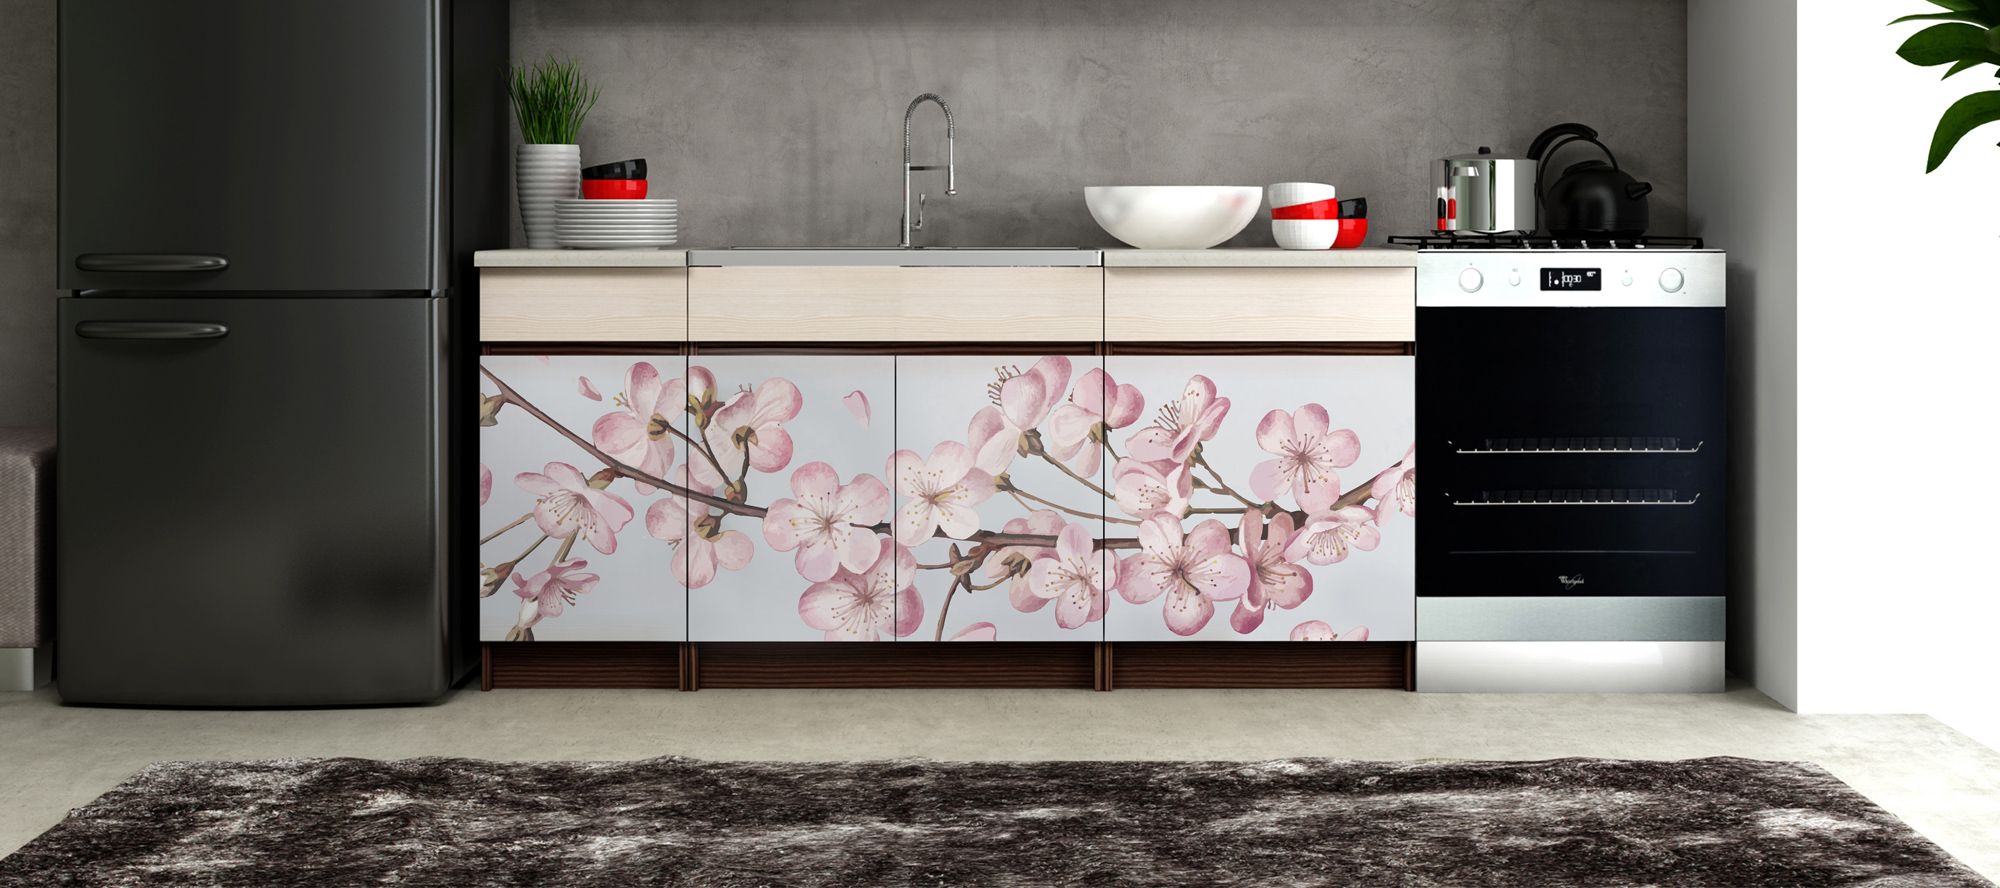 D'infinity, Flowery World floral laminates for kitchen-Sundek International